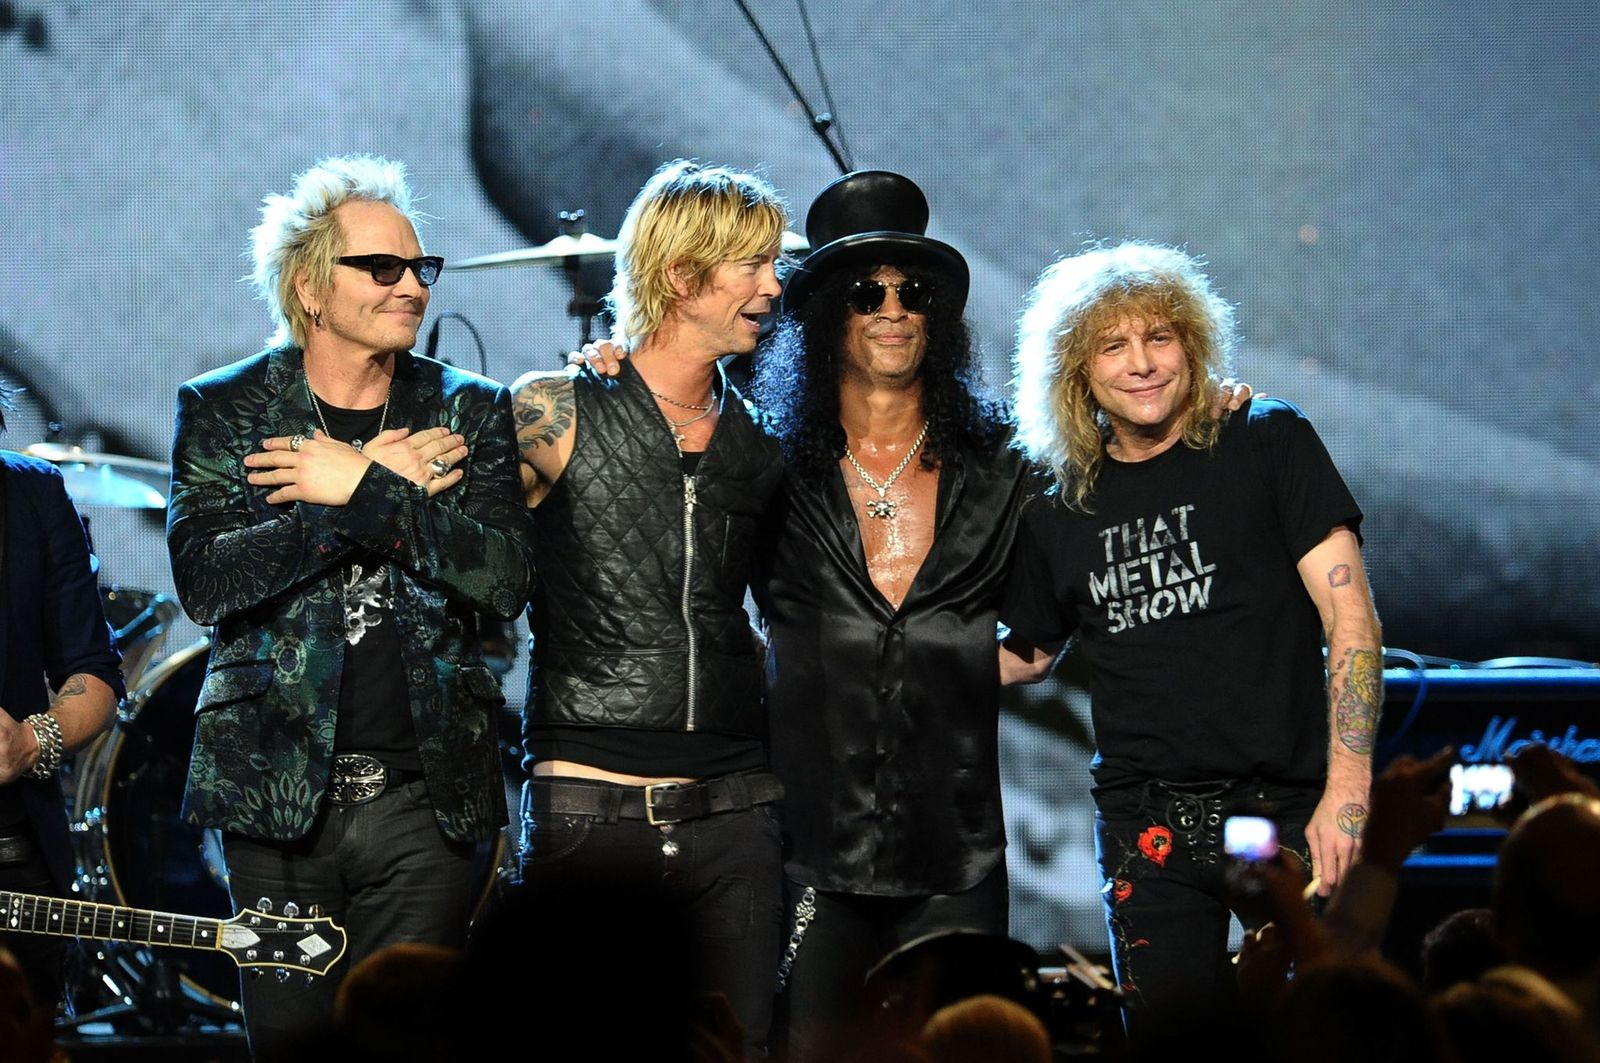 Matt Sorum, Duff McKagan, Slash and Steven Adler of Guns N' Roses, perform onstage during the 27th Annual Rock And Roll Hall of Fame Induction Ceremony on April 14, 2012 | Photo: Getty Images